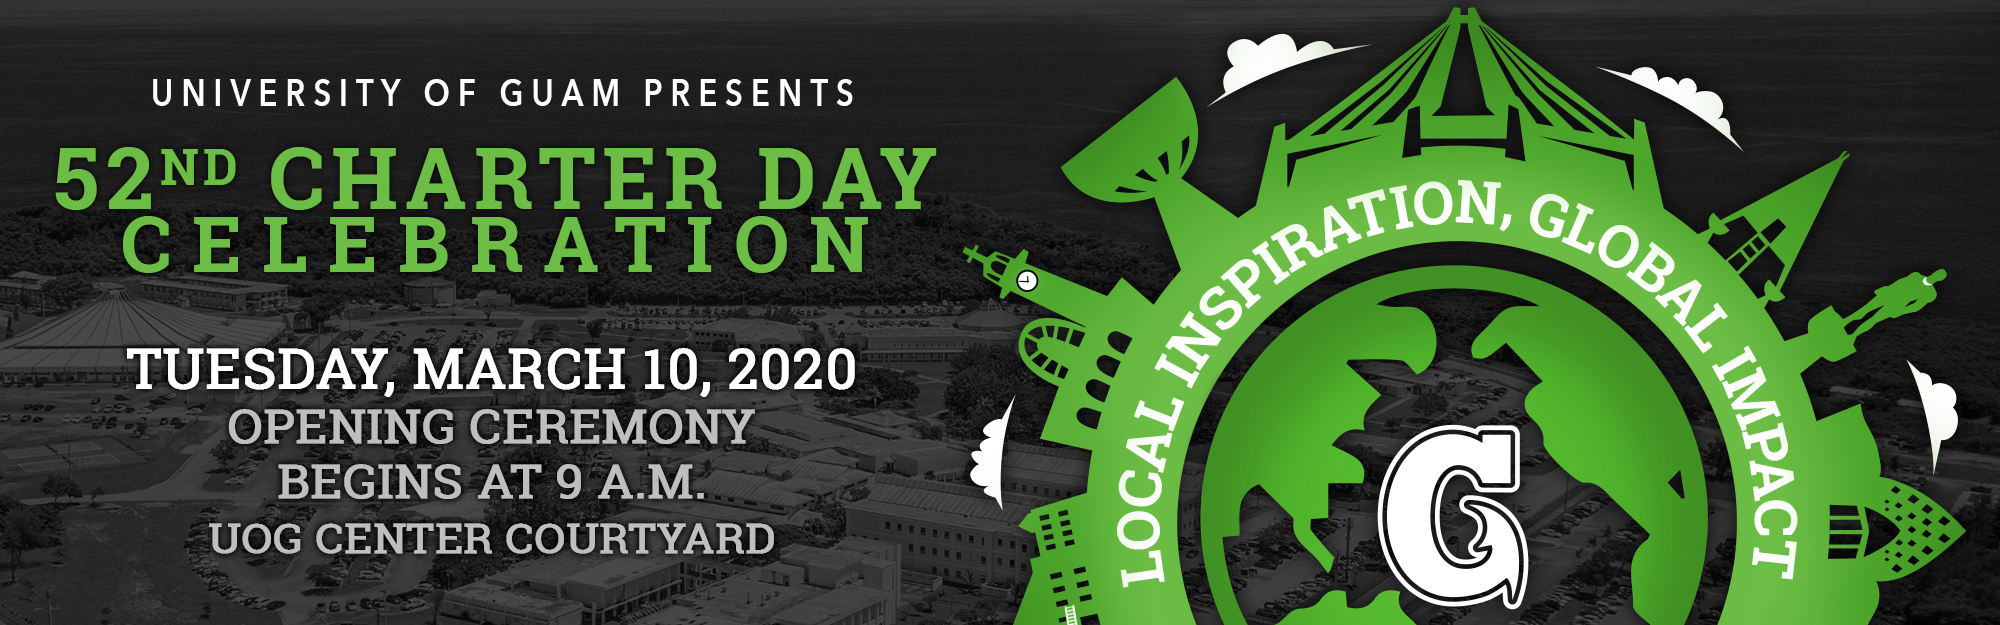 Charter Day 2020 Banner